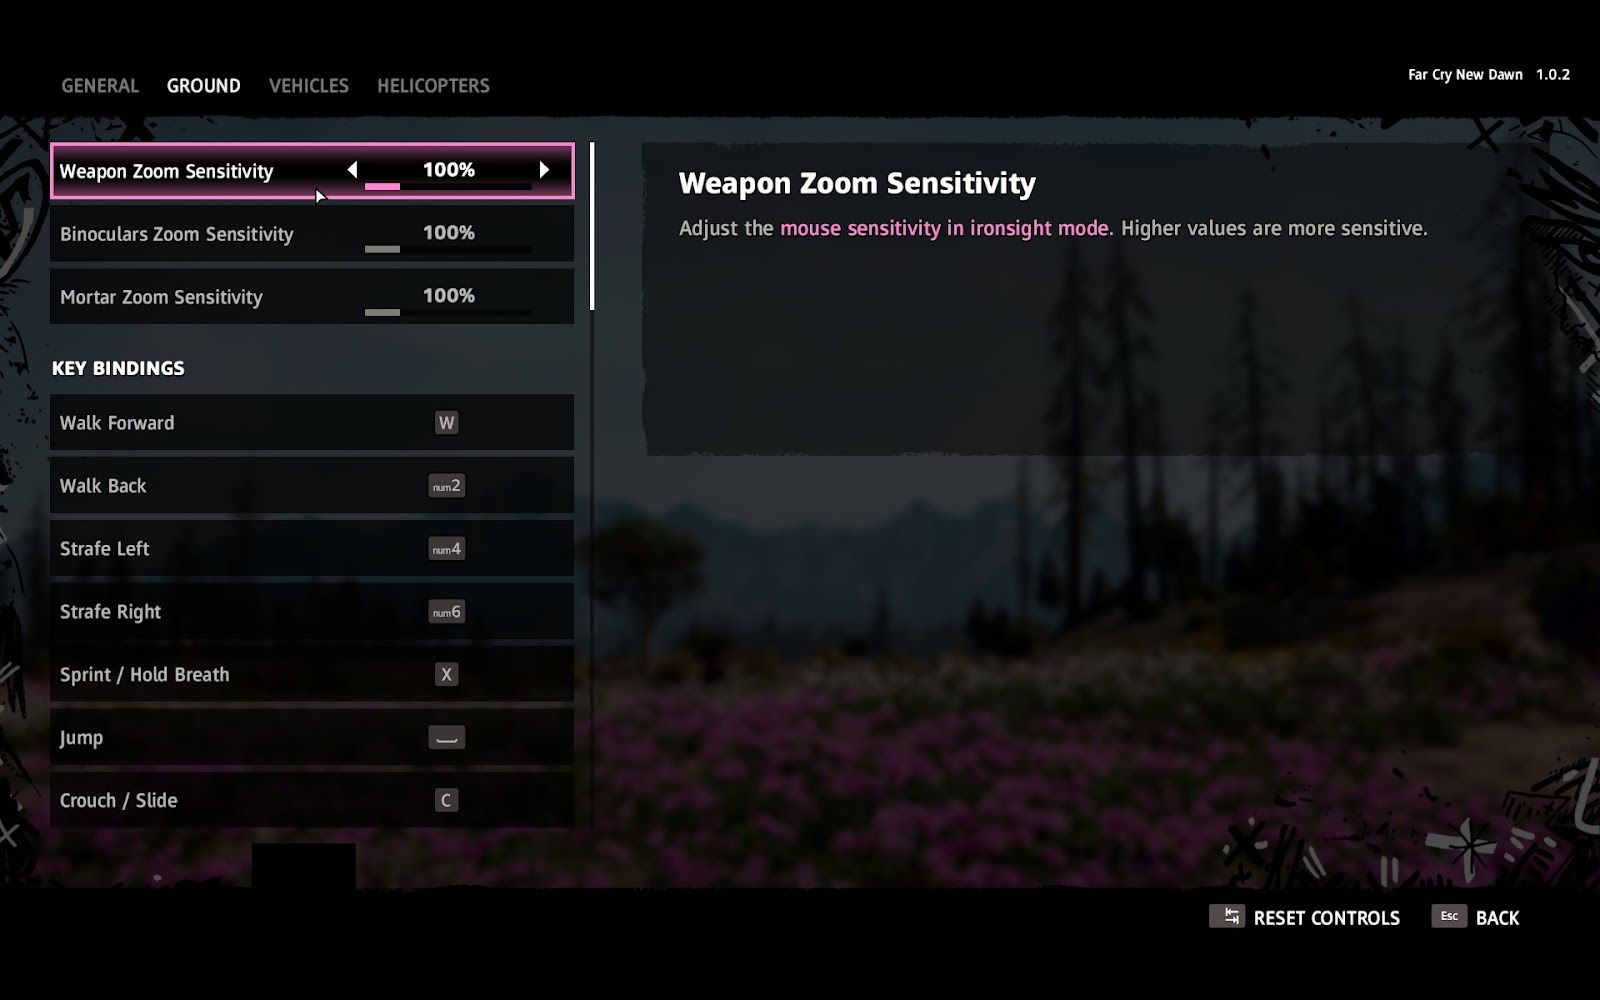 All key rebinds for movement, actions, combat and sensitivity settings